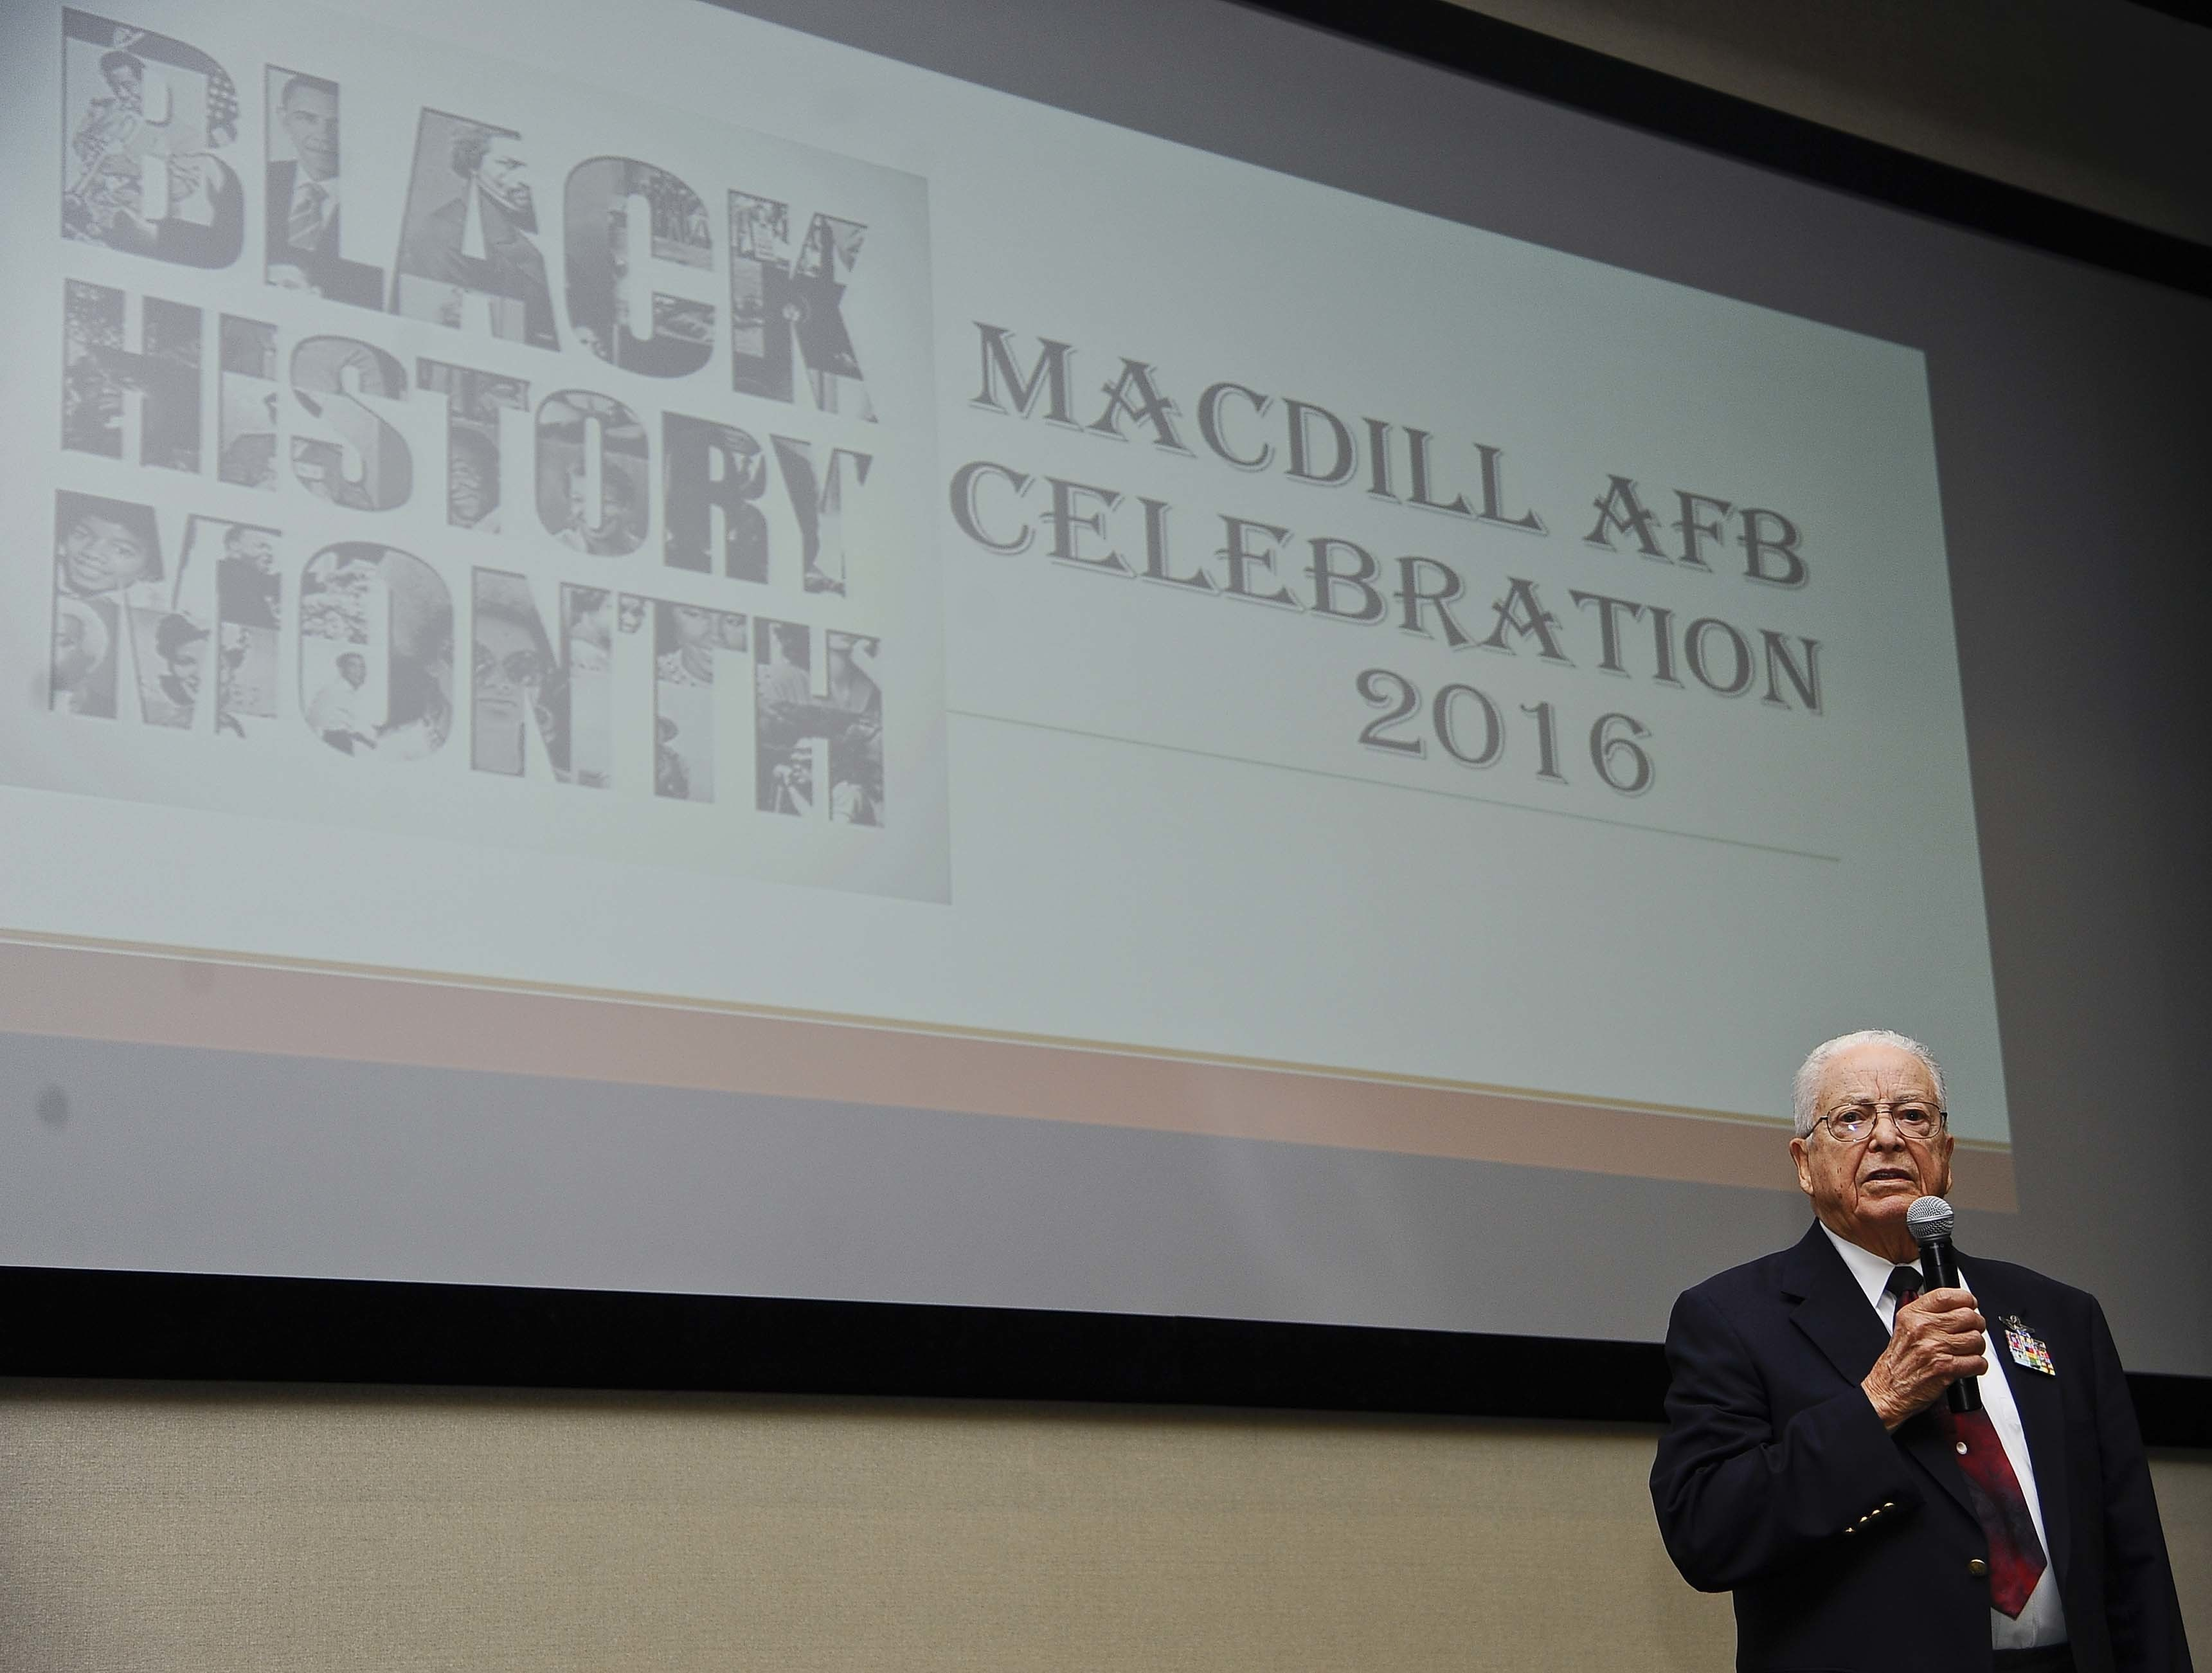 """Retired Lt. Col. George E. Hardy, a Tuskegee Airman, gives a speech during the """"A Salute To A Living Legend"""" event at MacDill Air Force Base, Fla., Feb. 11, 2016. In September of 1944, he was assigned to the famous 99th Fighter Squadron, 332nd Fighter Group at Ramitelli Air Base, Italy, where he would participate in 21 escort and strafing missions over Europe. (Photo by SrA Vernon Fowler)"""